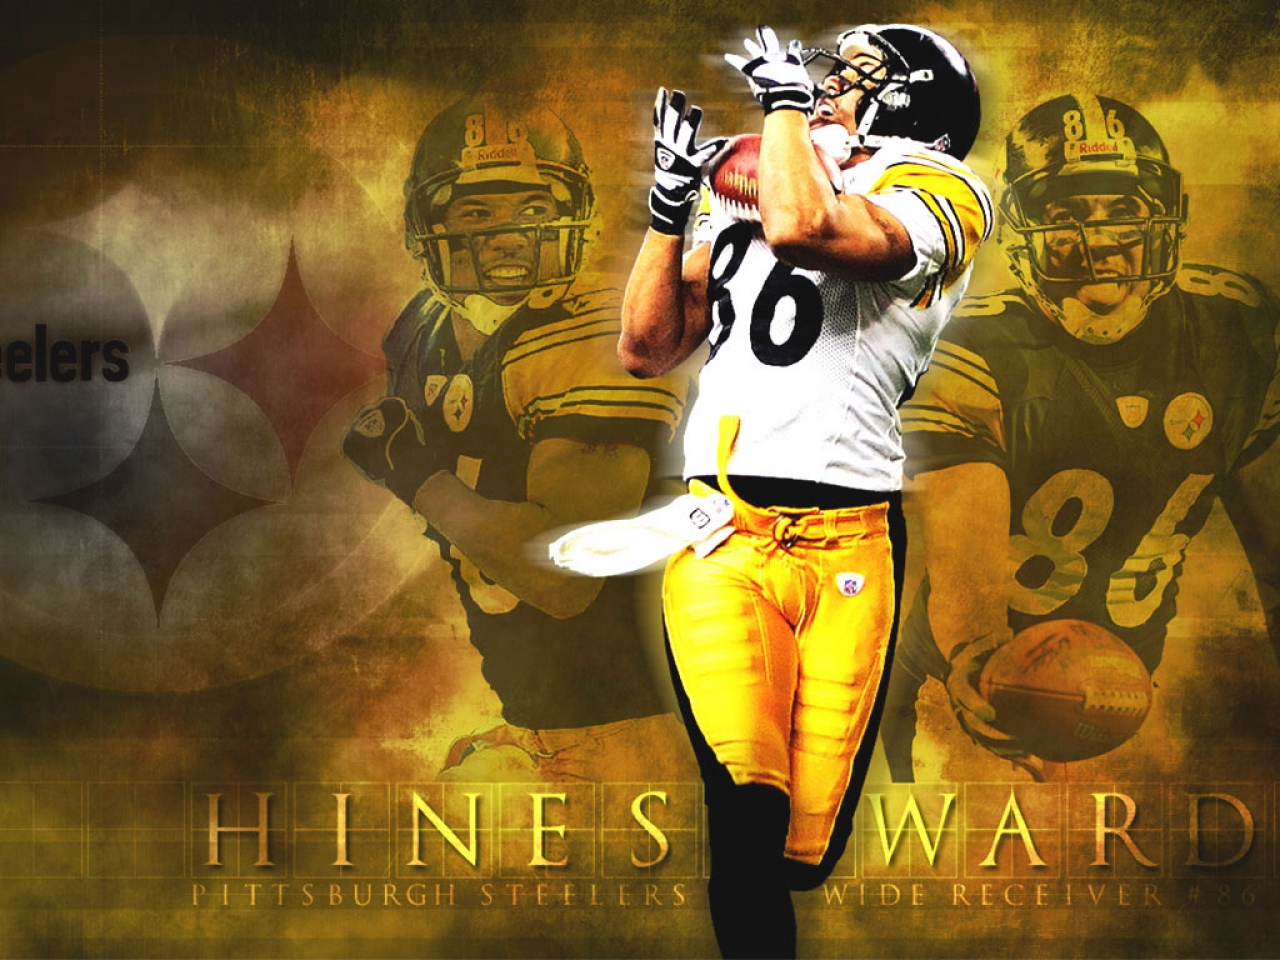 day Pittsburgh Steelers wallpaper Pittsburgh Steelers wallpapers 1280x960